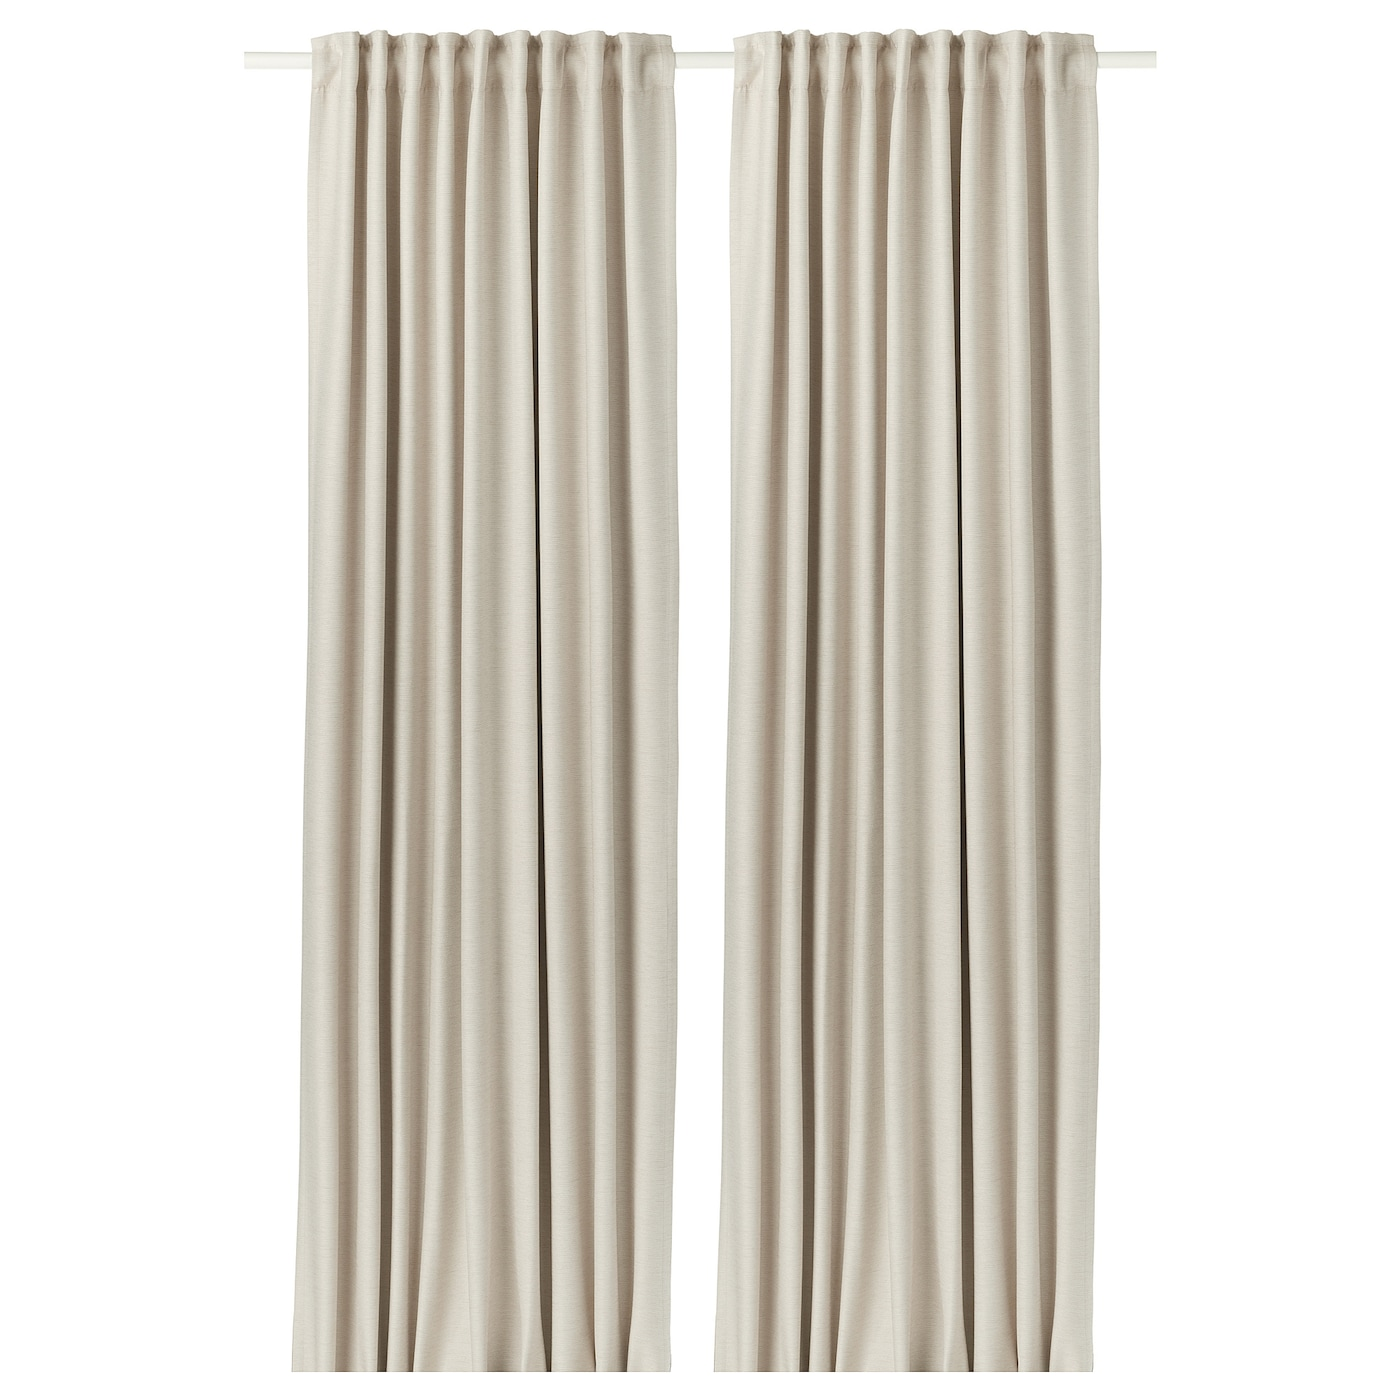 https://www.ikea.com/be/nl/images/products/vilborg-gordijnen-1-paar-beige__0598849_pe677835_s5.jpg